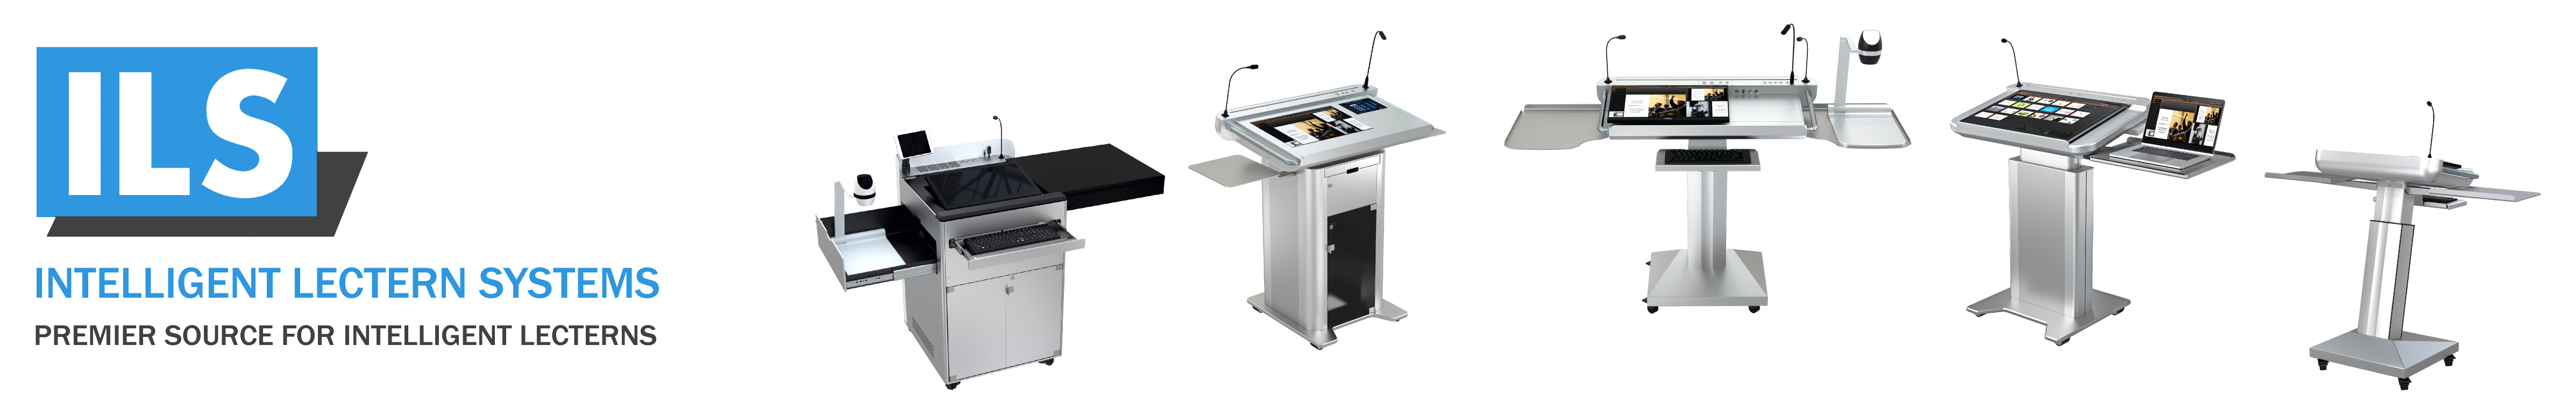 ILS, your premier source for intelligent lecterns